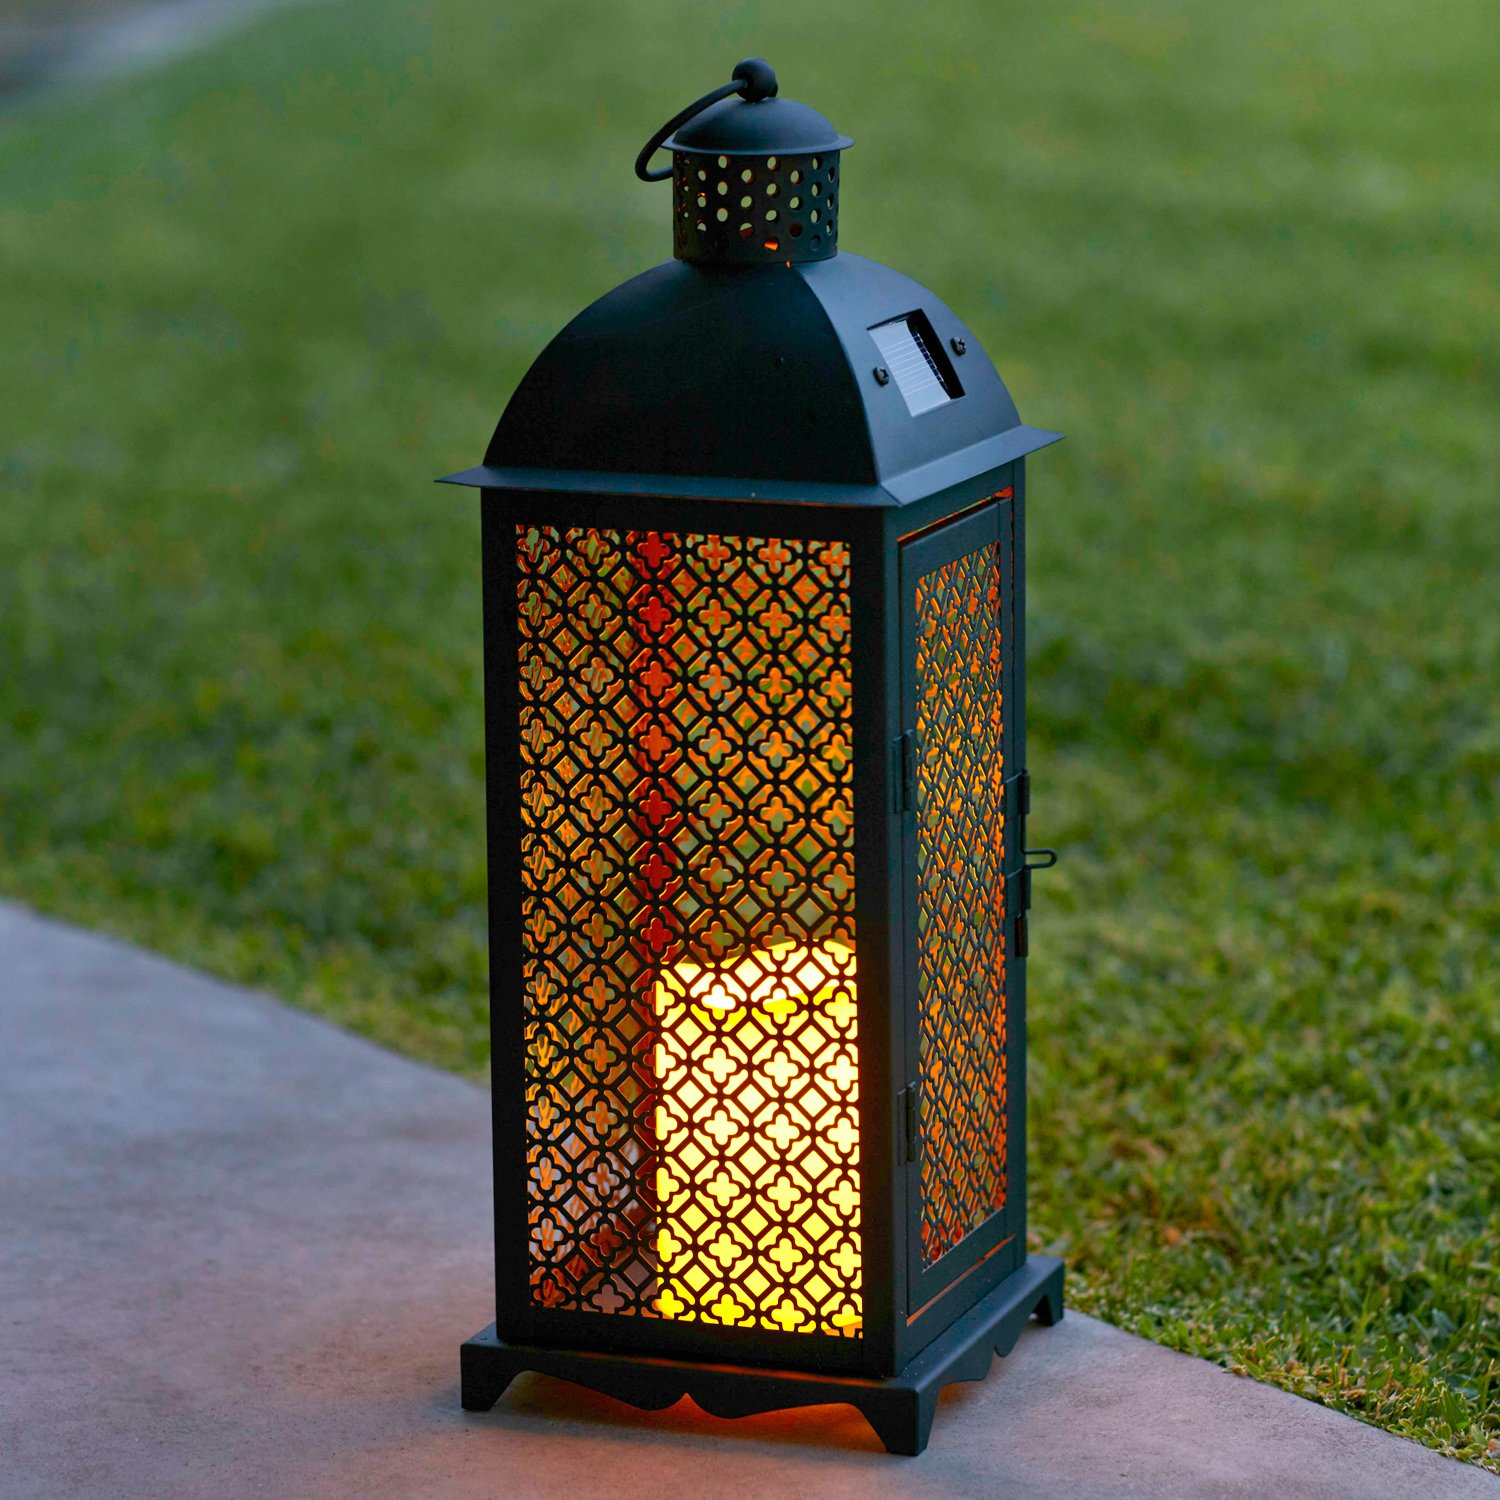 Lights4fun, Inc. Moroccan Solar Powered LED Outdoor Fully Weatherproof Garden & Patio Flameless Candle Lantern